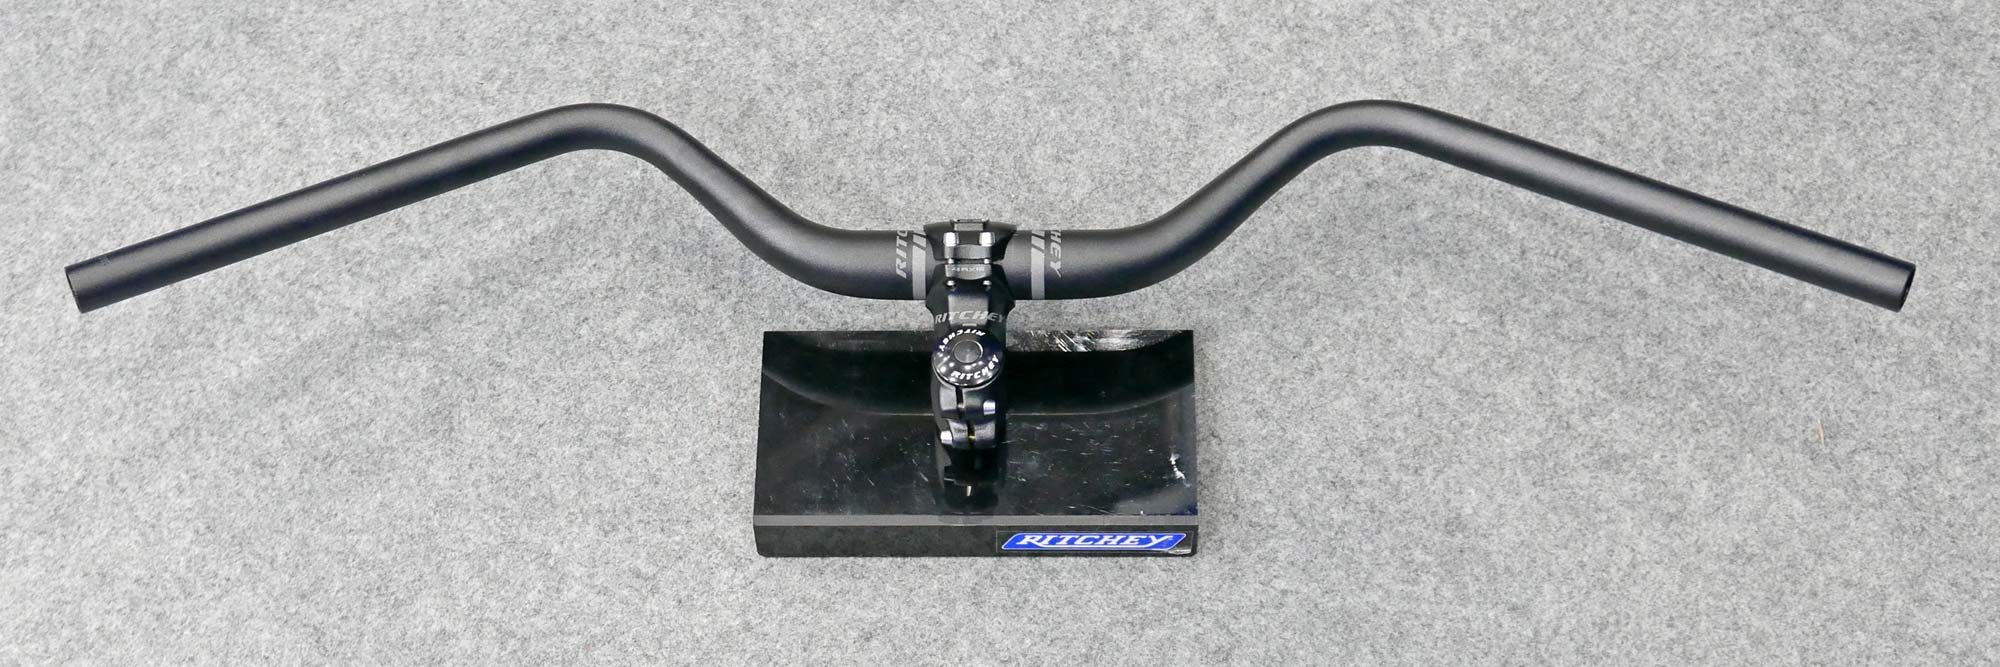 Ritchey Comp Kyote MTB bar, large sweep adventure mountain bike handlebar